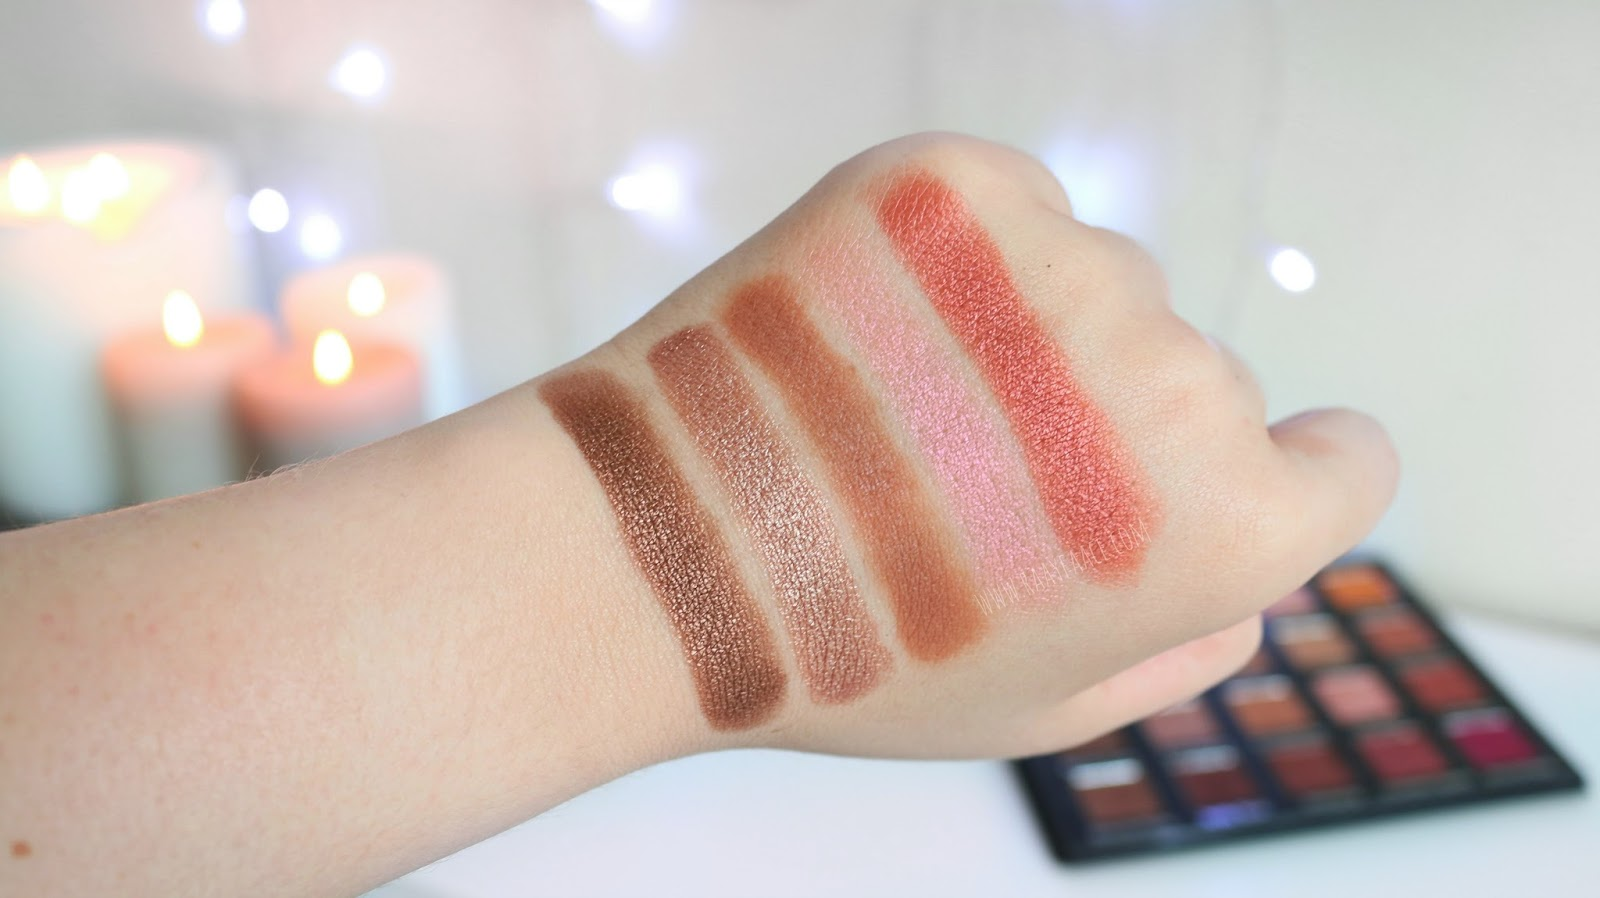 Violet Voss Holy Grail Swatches